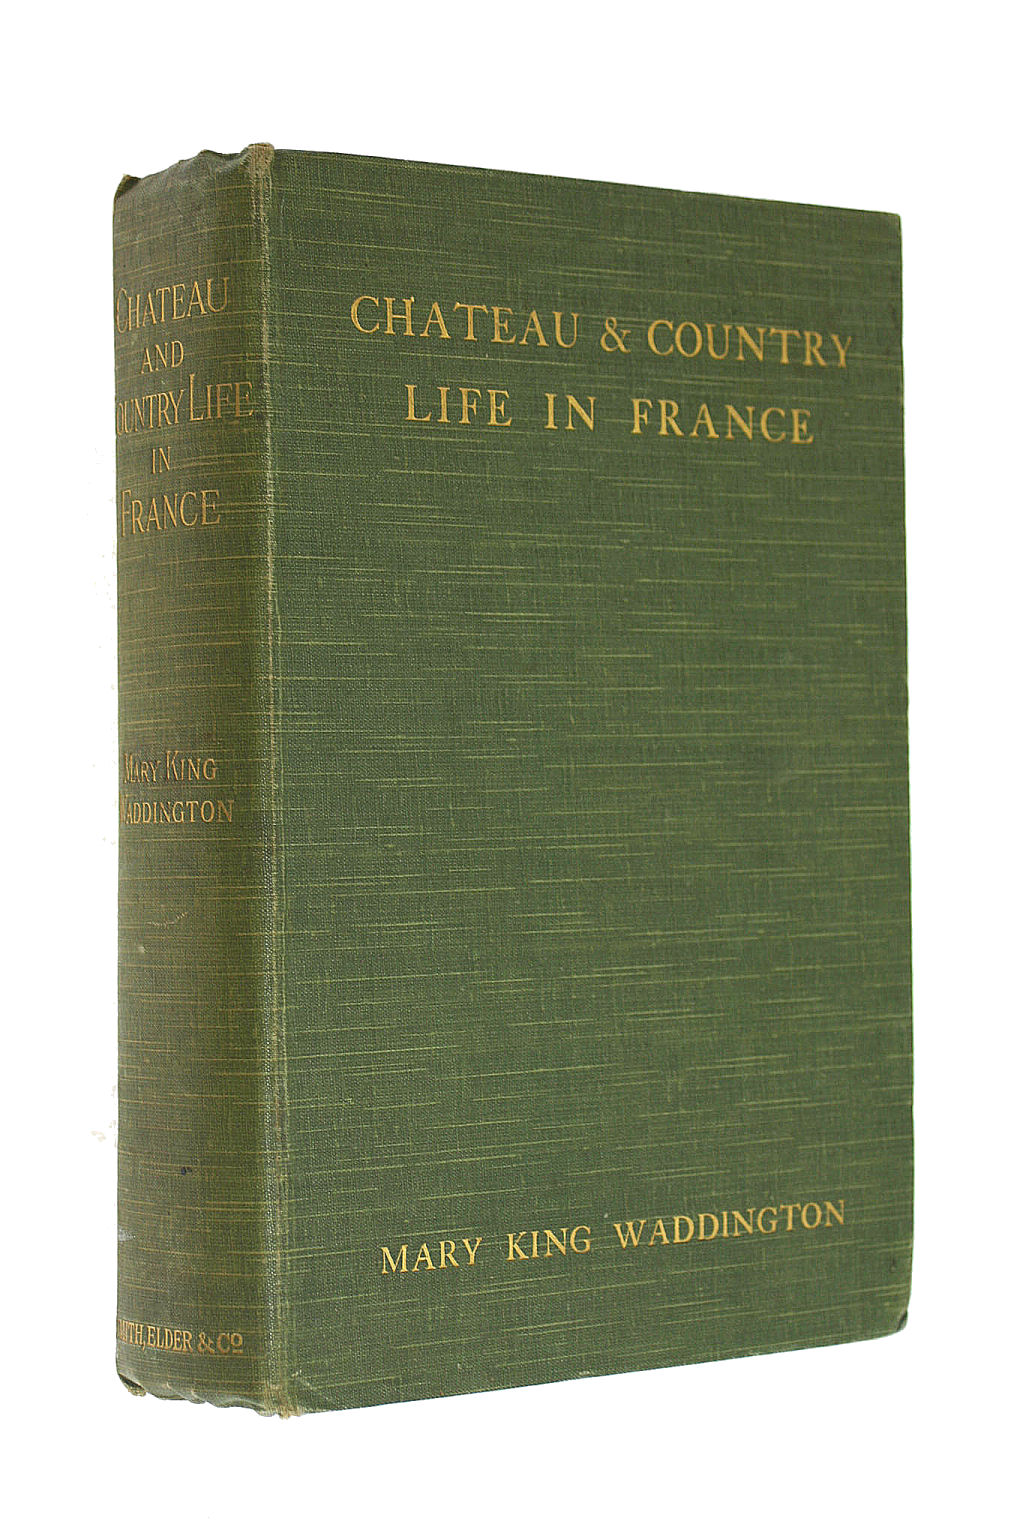 Image for Chateau And Country Life In France. Illustrated.